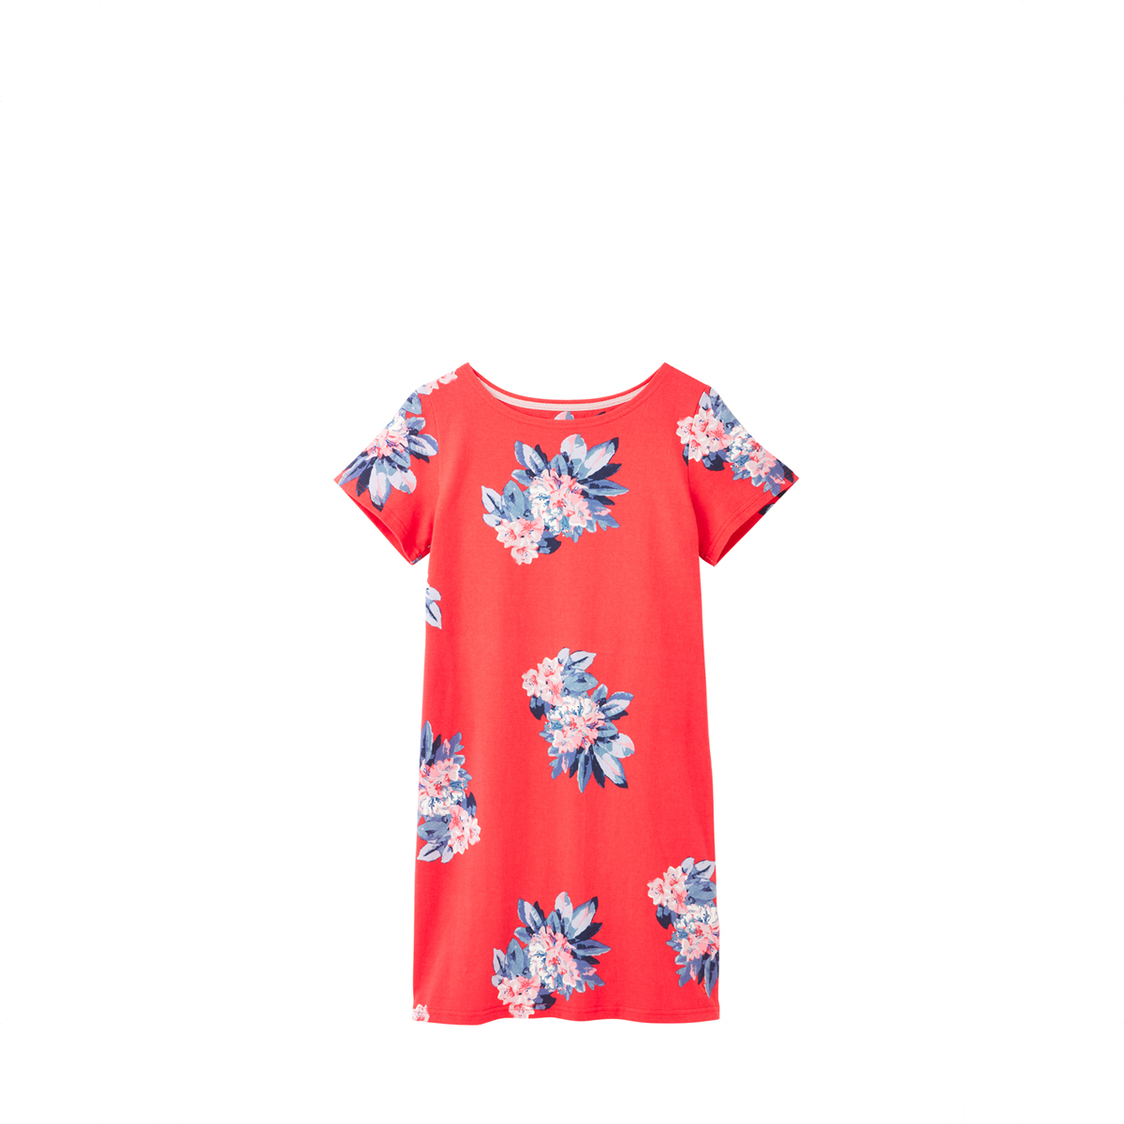 Tom Joule Riviera Short Sleeve Jersey Dress Floral Red